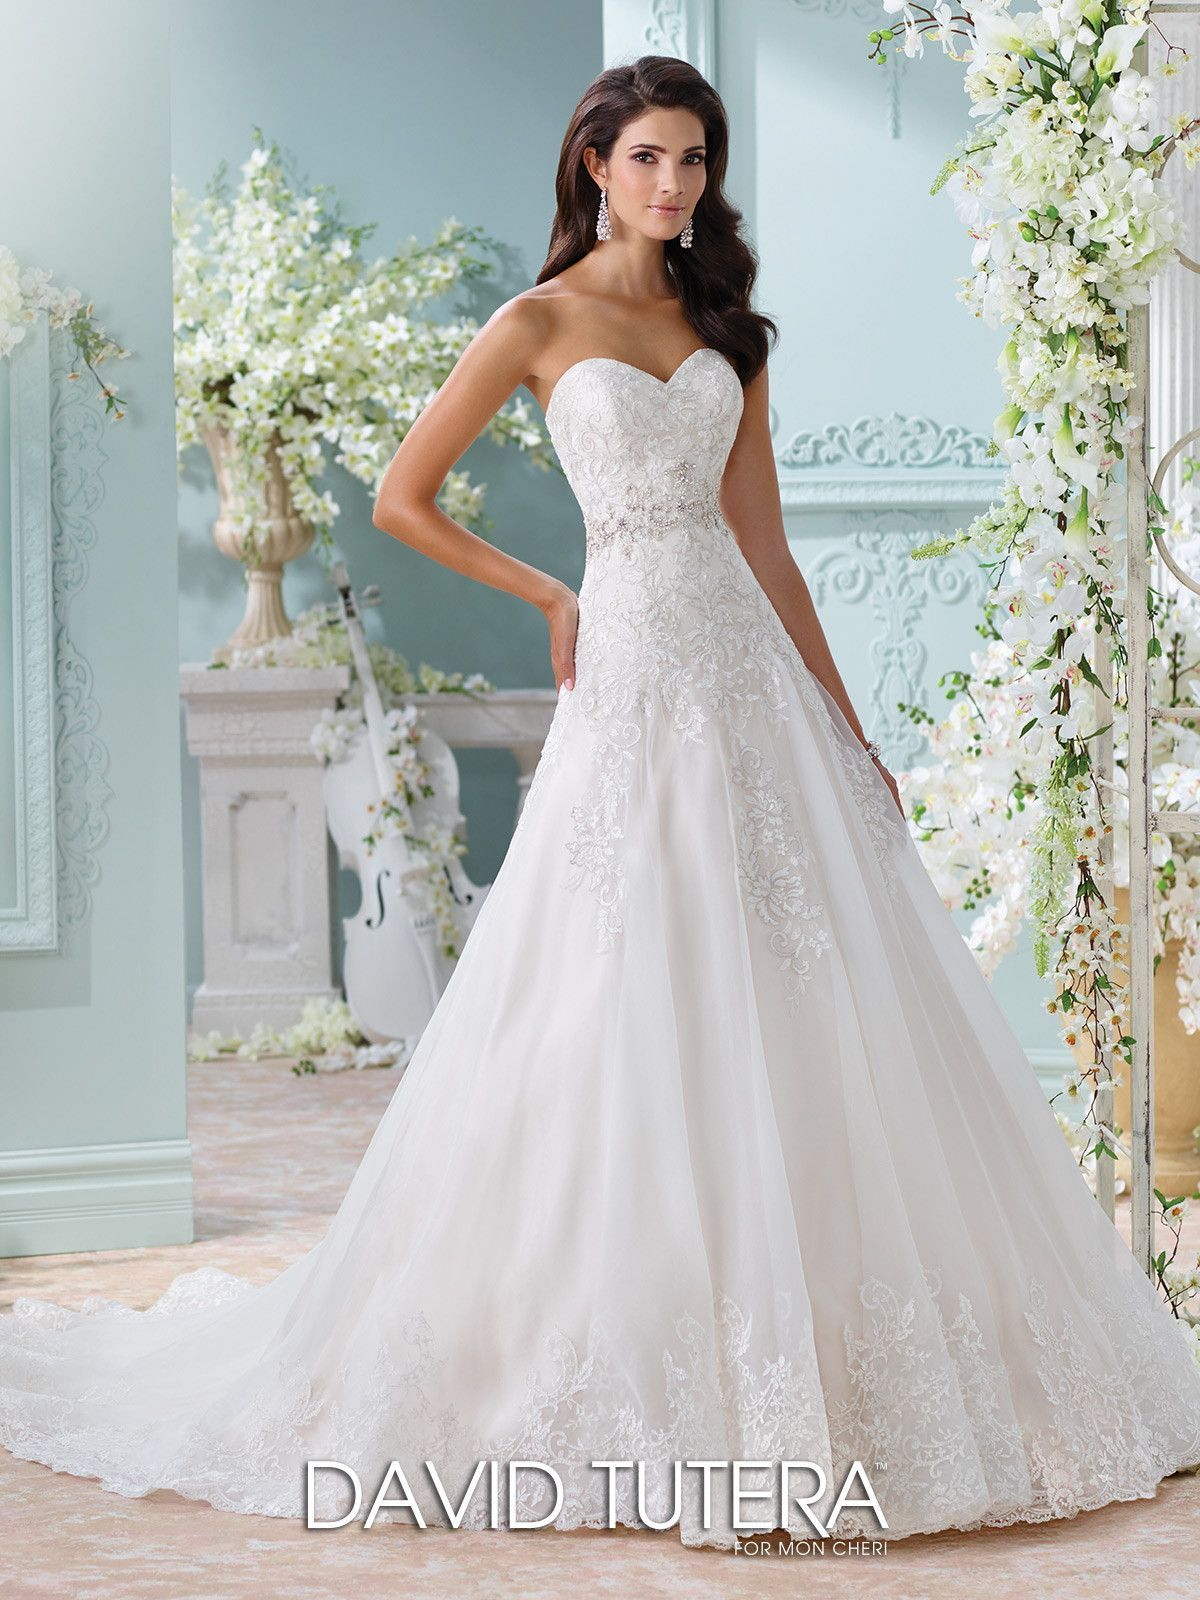 David tutera laina all dressed up bridal gown david